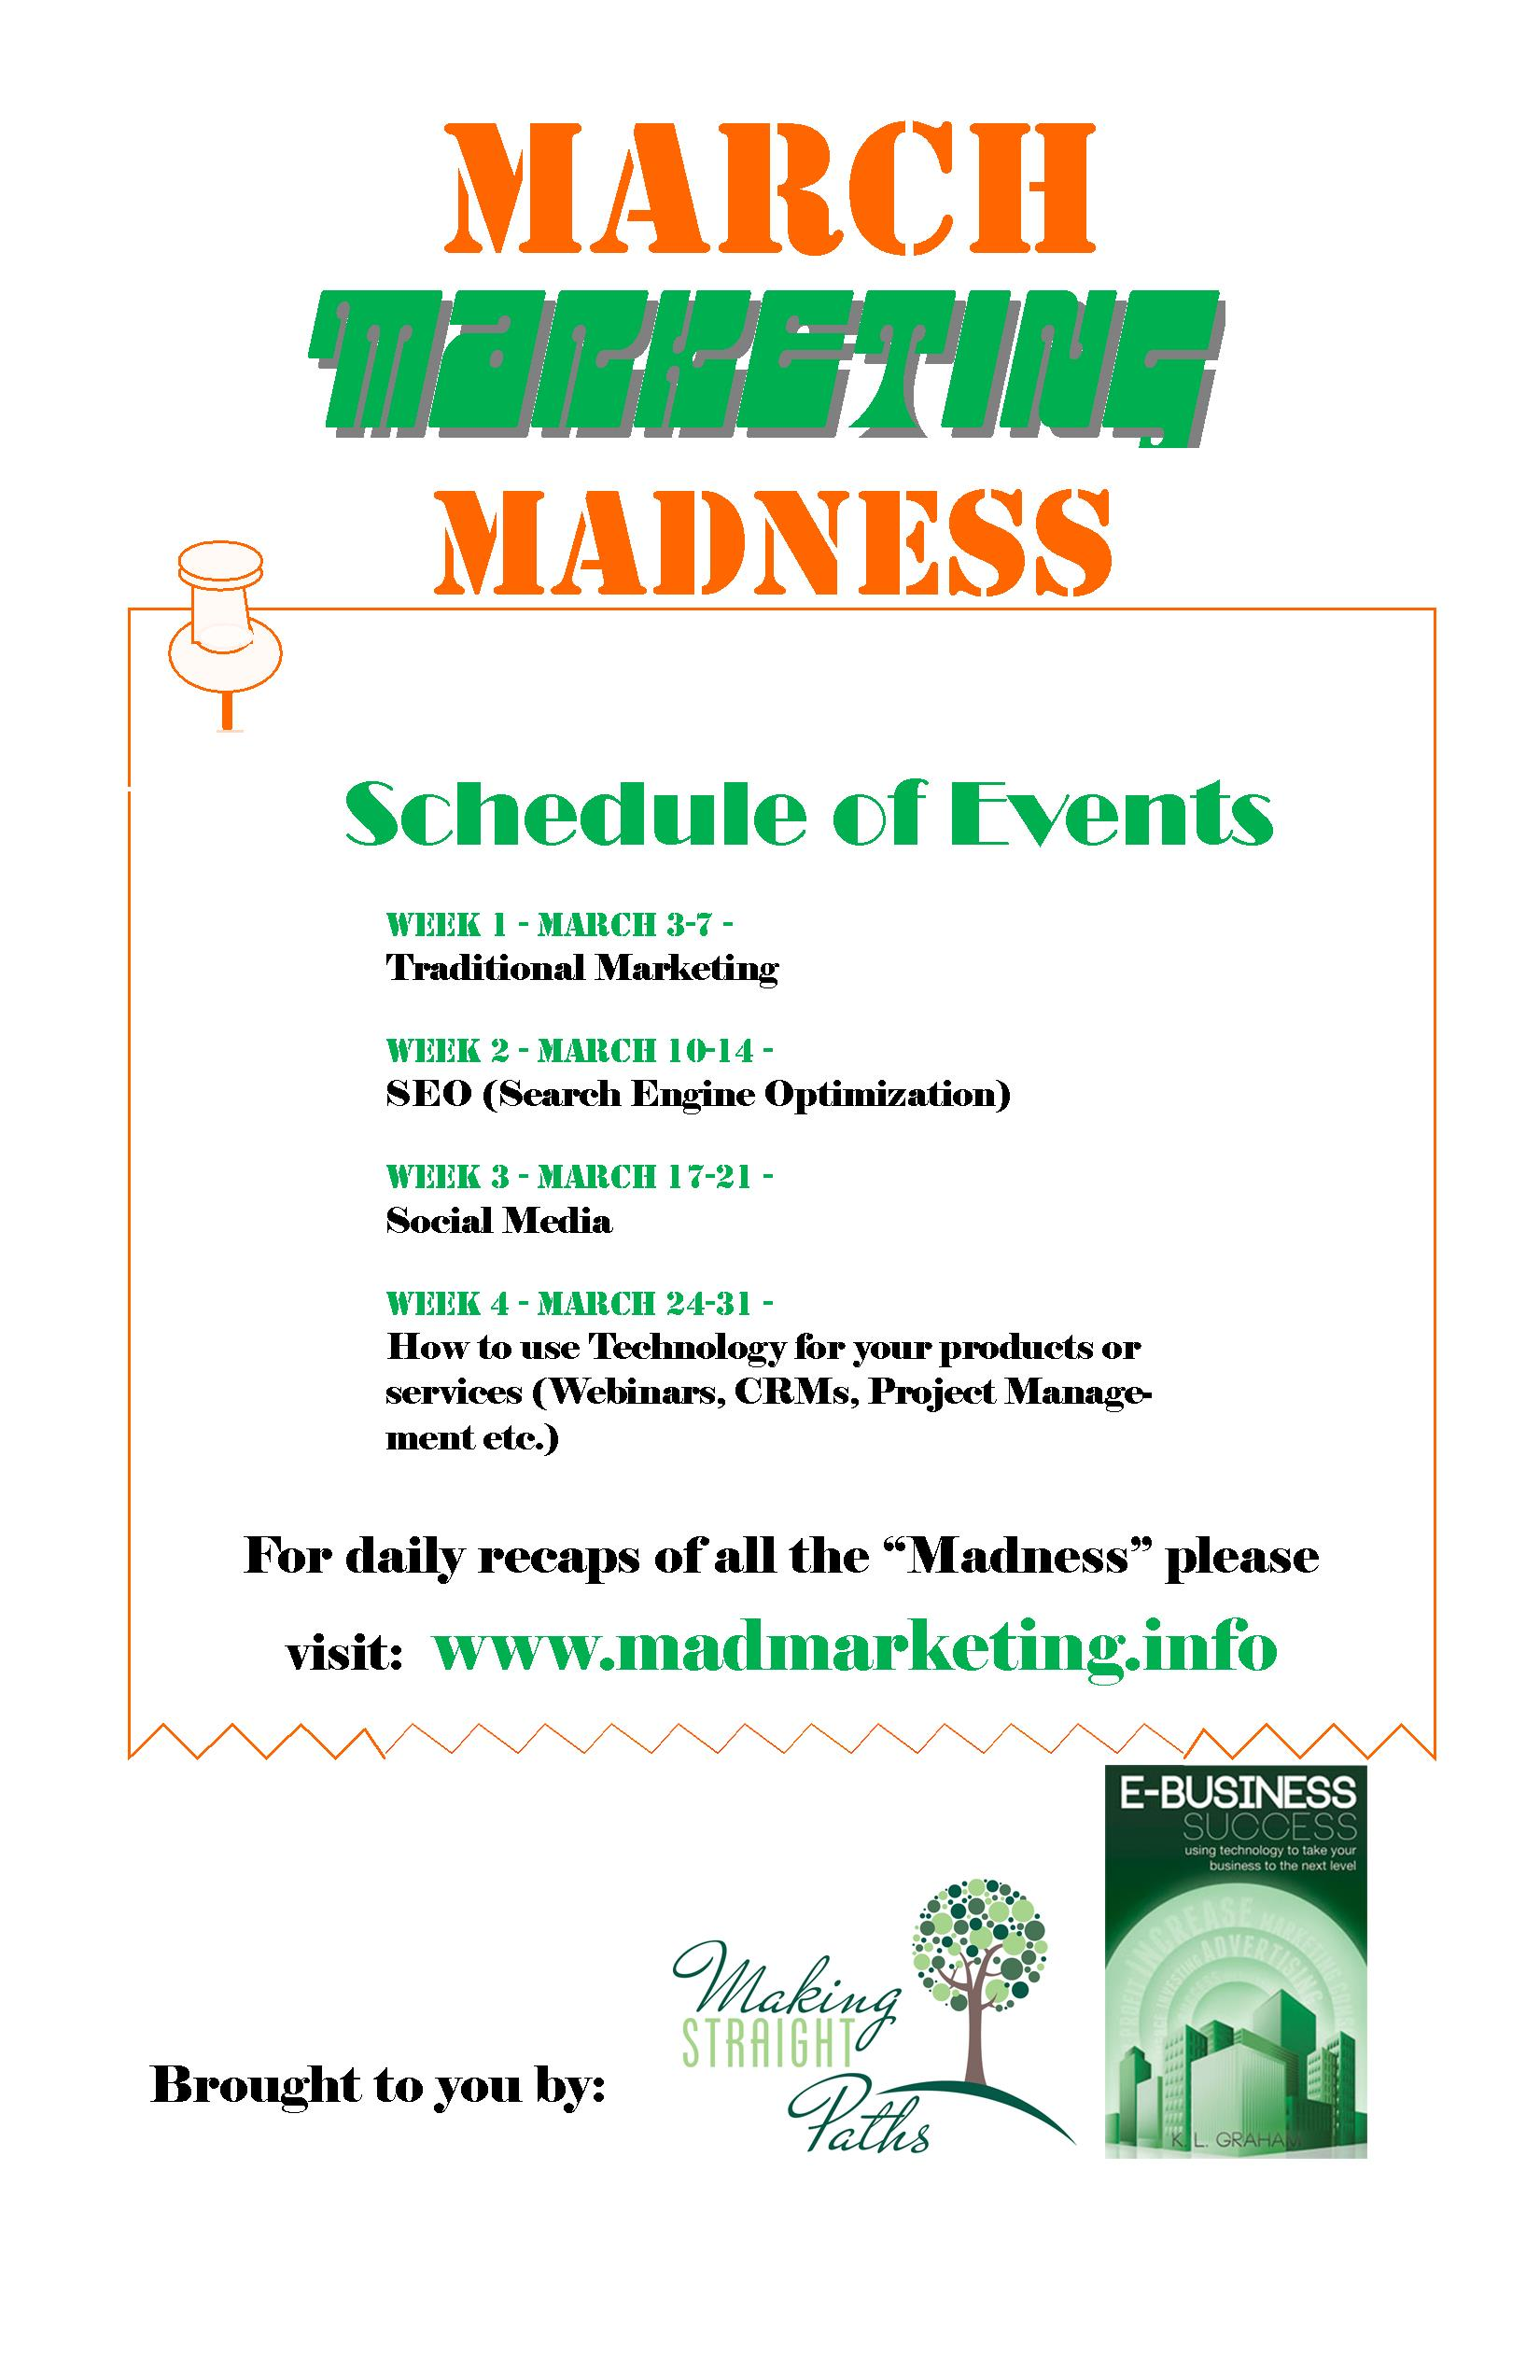 March Marketing Madness Flyer - Schedule.jpg